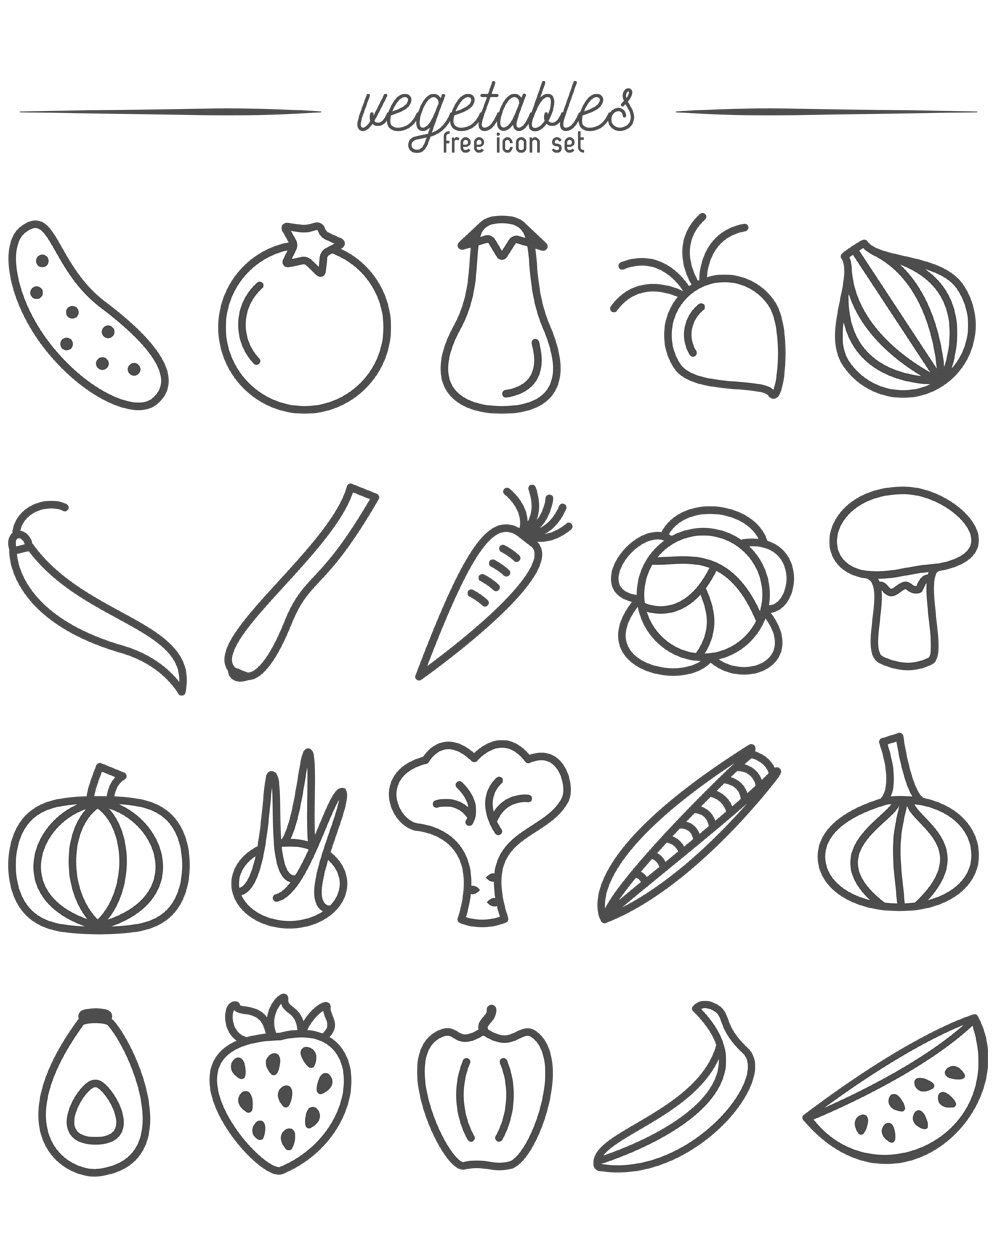 Free-Vegetables-and-Fruits-Icons